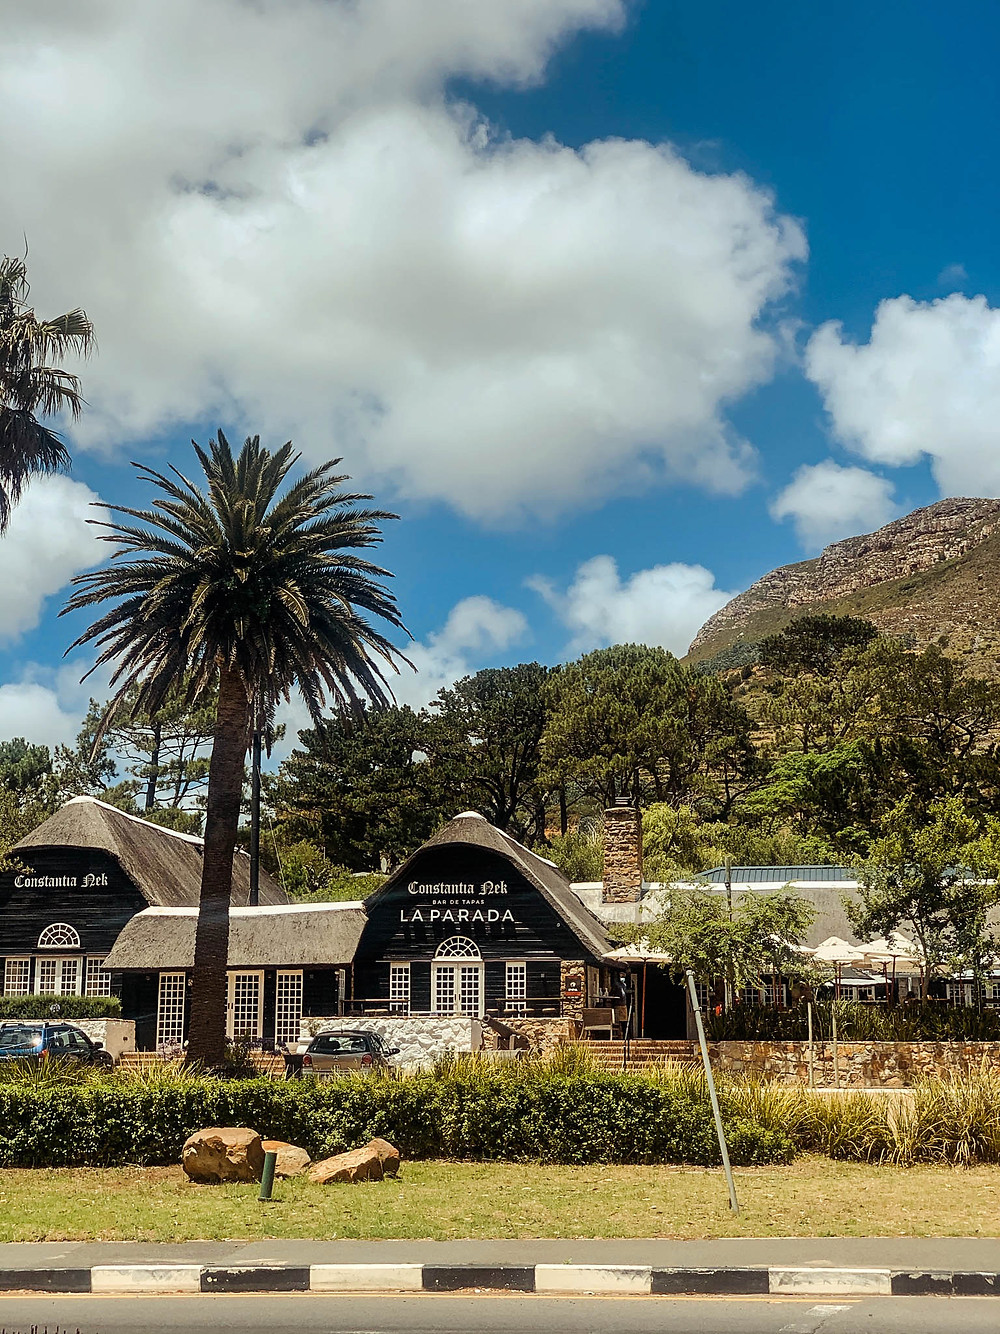 La Parada Constantia Nek - a place for a great Sunday brunch (in normal times...)